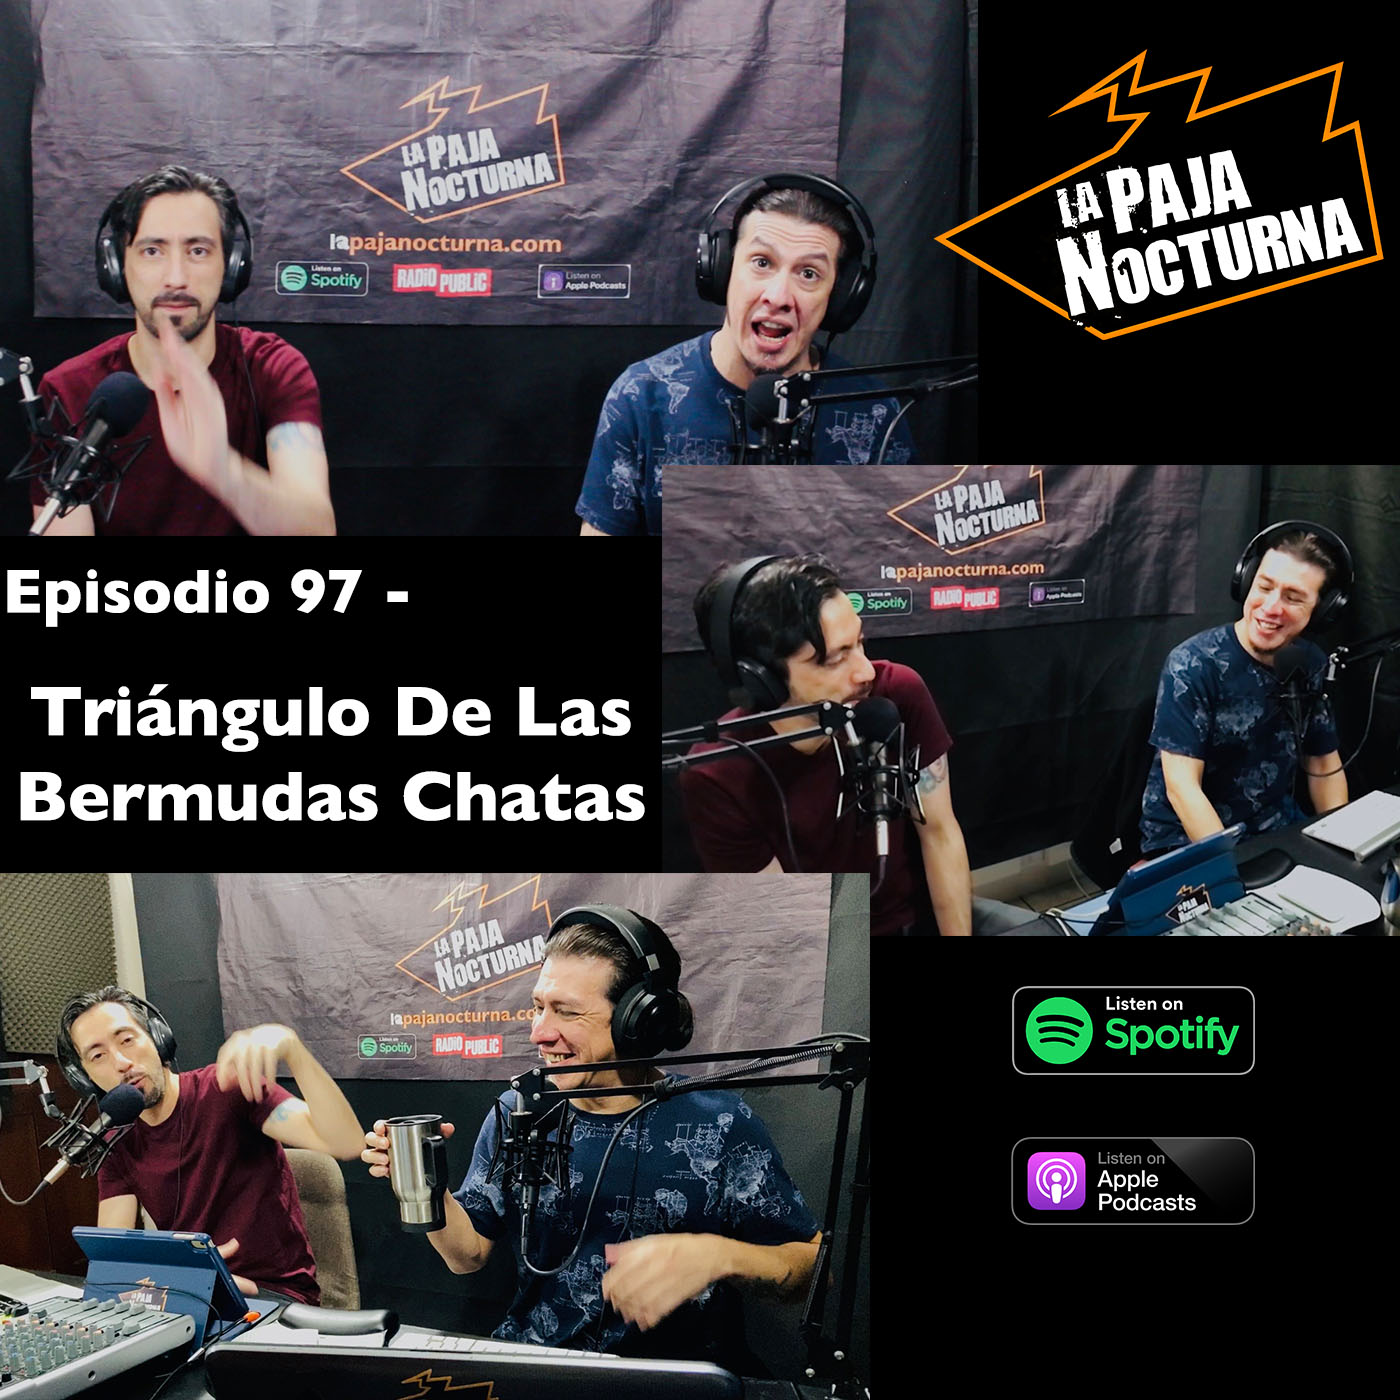 La paja nocturna podcast Episodio 97